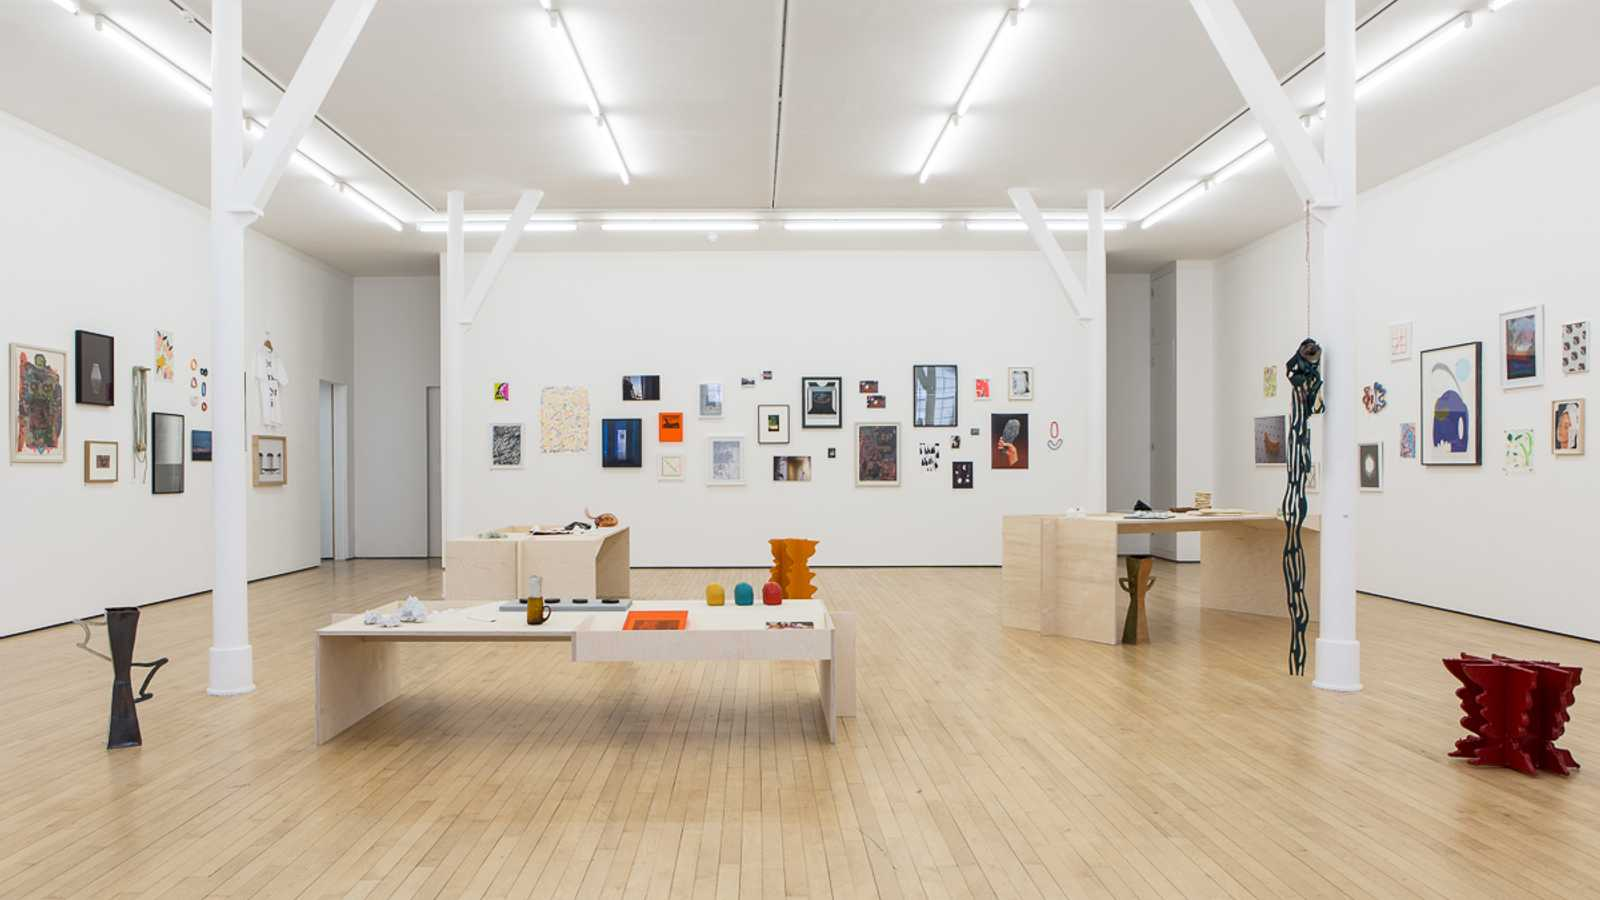 1500 sq ft gallery space